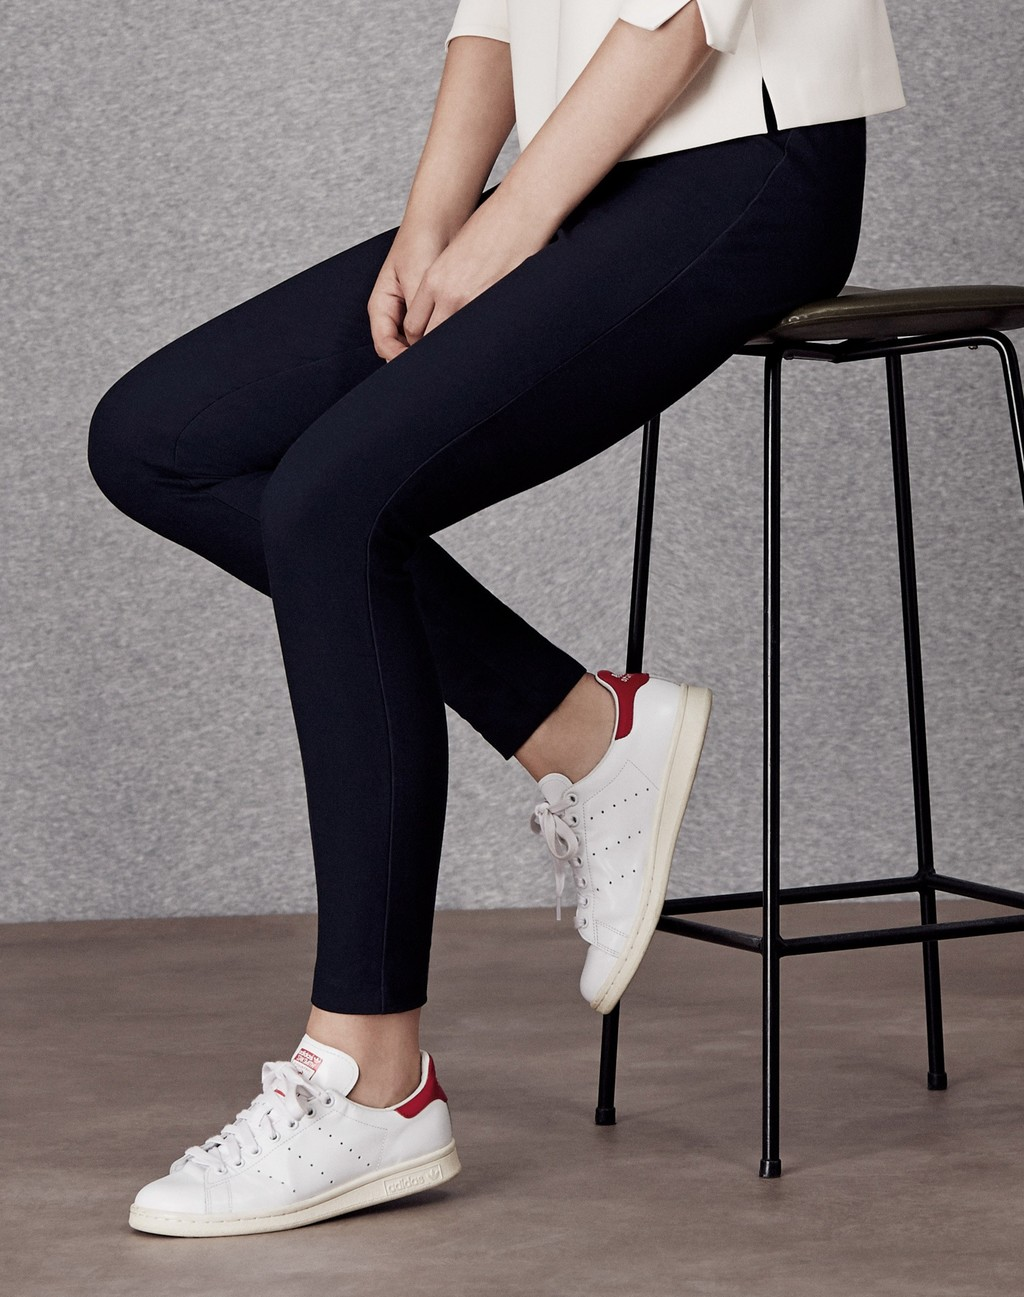 Stretch Gabardine Legging Dark Navy - pattern: plain; waist detail: elasticated waist; waist: mid/regular rise; predominant colour: navy; occasions: casual; length: ankle length; fibres: cotton - stretch; texture group: jersey - clingy; fit: skinny/tight leg; pattern type: fabric; style: standard; season: a/w 2015; wardrobe: basic